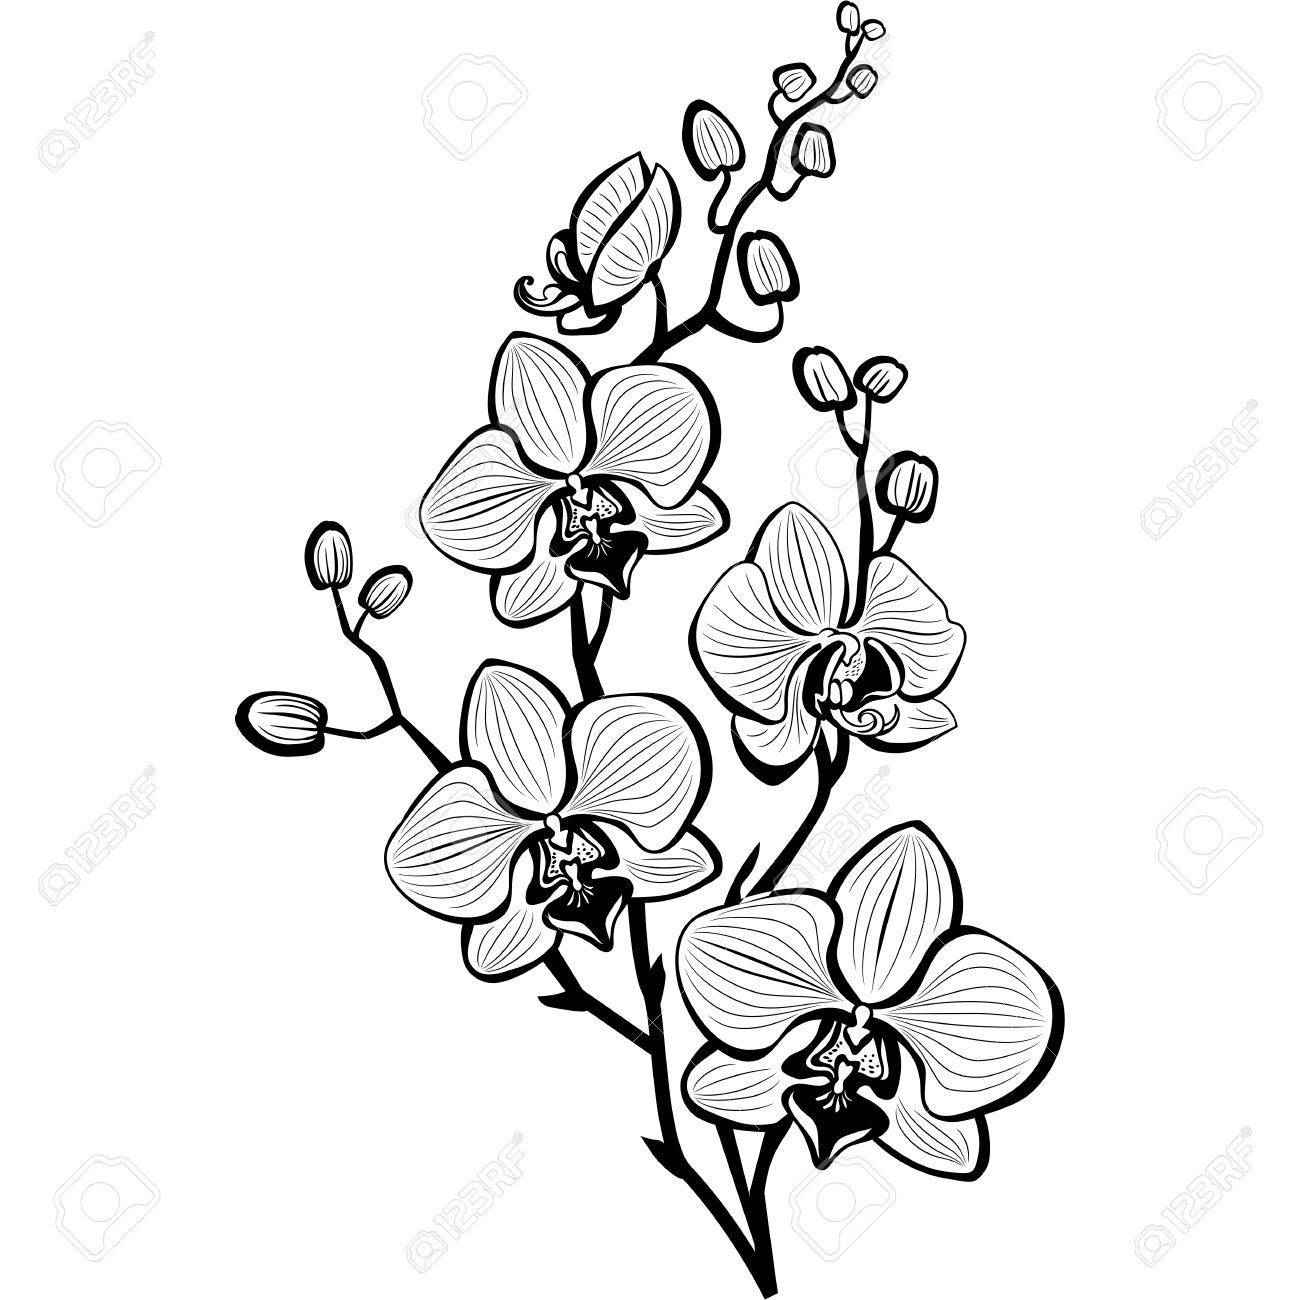 how to draw an orchid flower drawing printout how to draw an orchid draw an to flower orchid how